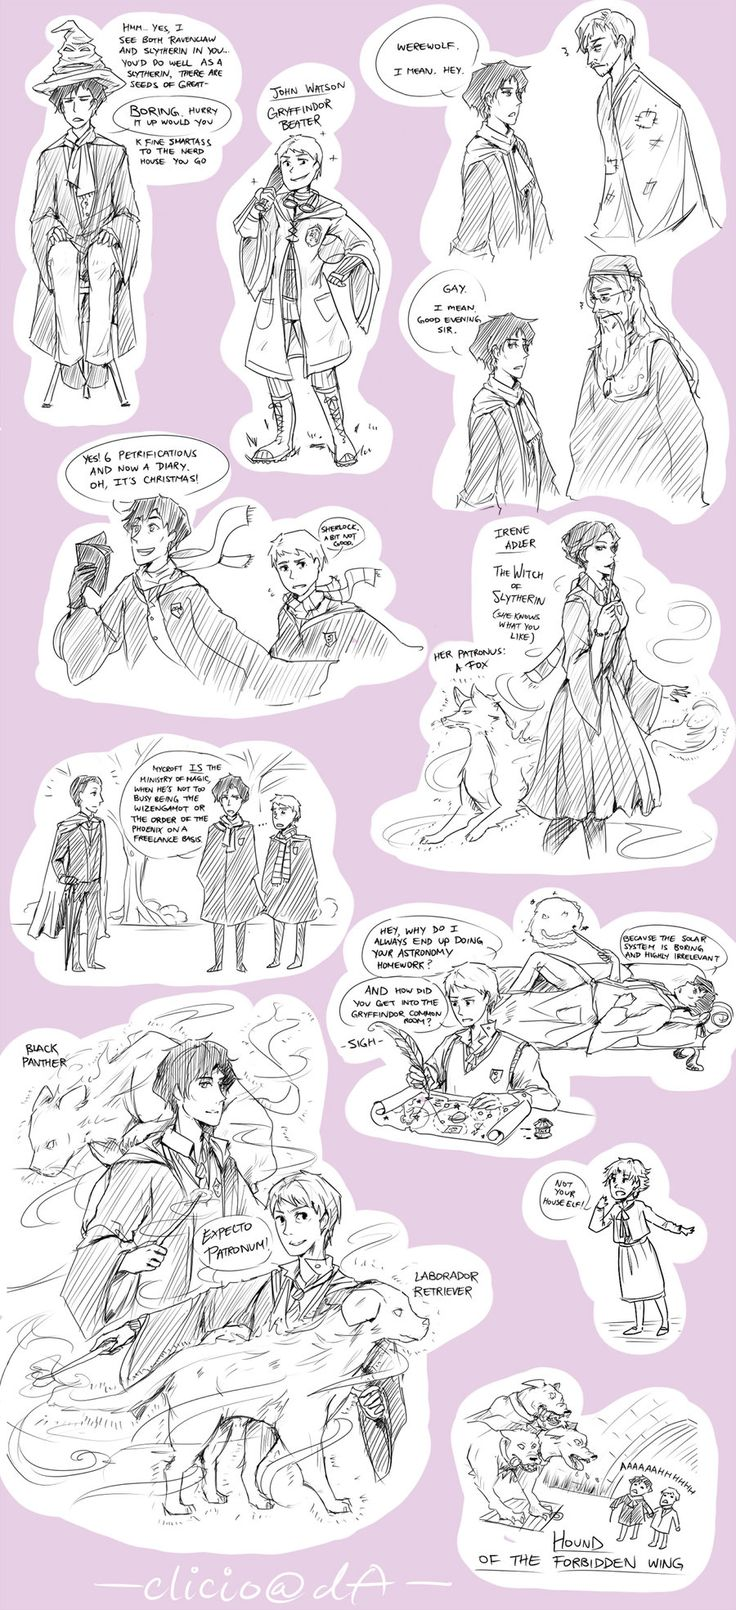 sherlock+hp crossover doodles by ~Clicio on deviantART I really appreciate this. Though I can't help but think that John and Sherlock's patronuses (patronusi?) should be the otter and hedgehog. But I do like the retriever for John.